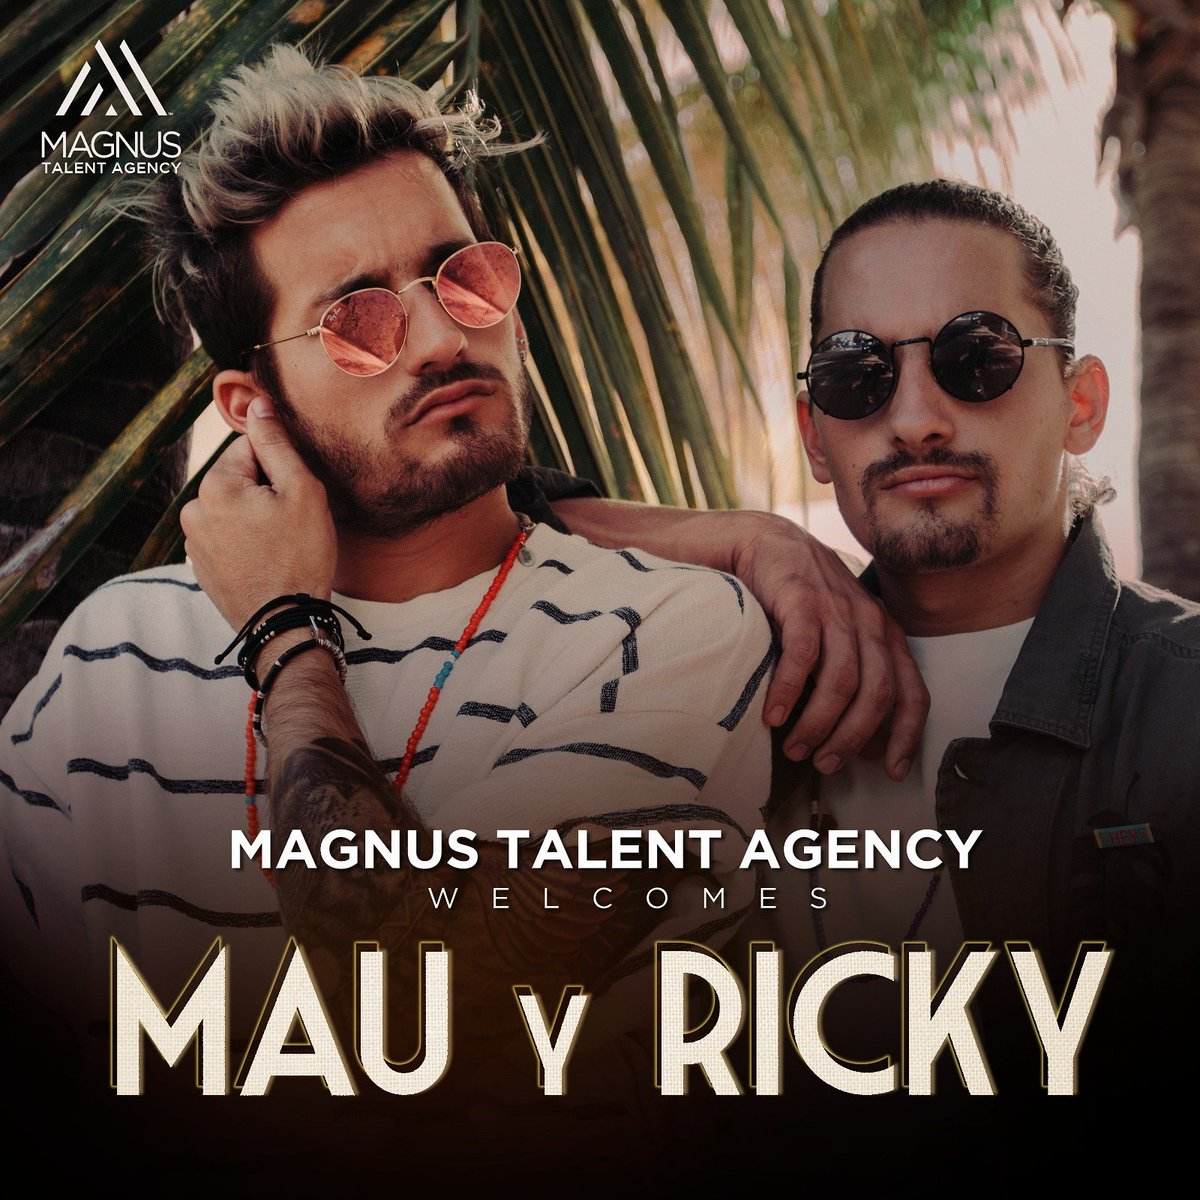 Welcome to the Family || Bienvenidos a la familia @MauYRicky #EstoSigue #MagnusStrong https://t.co/k9MKZ8Nine